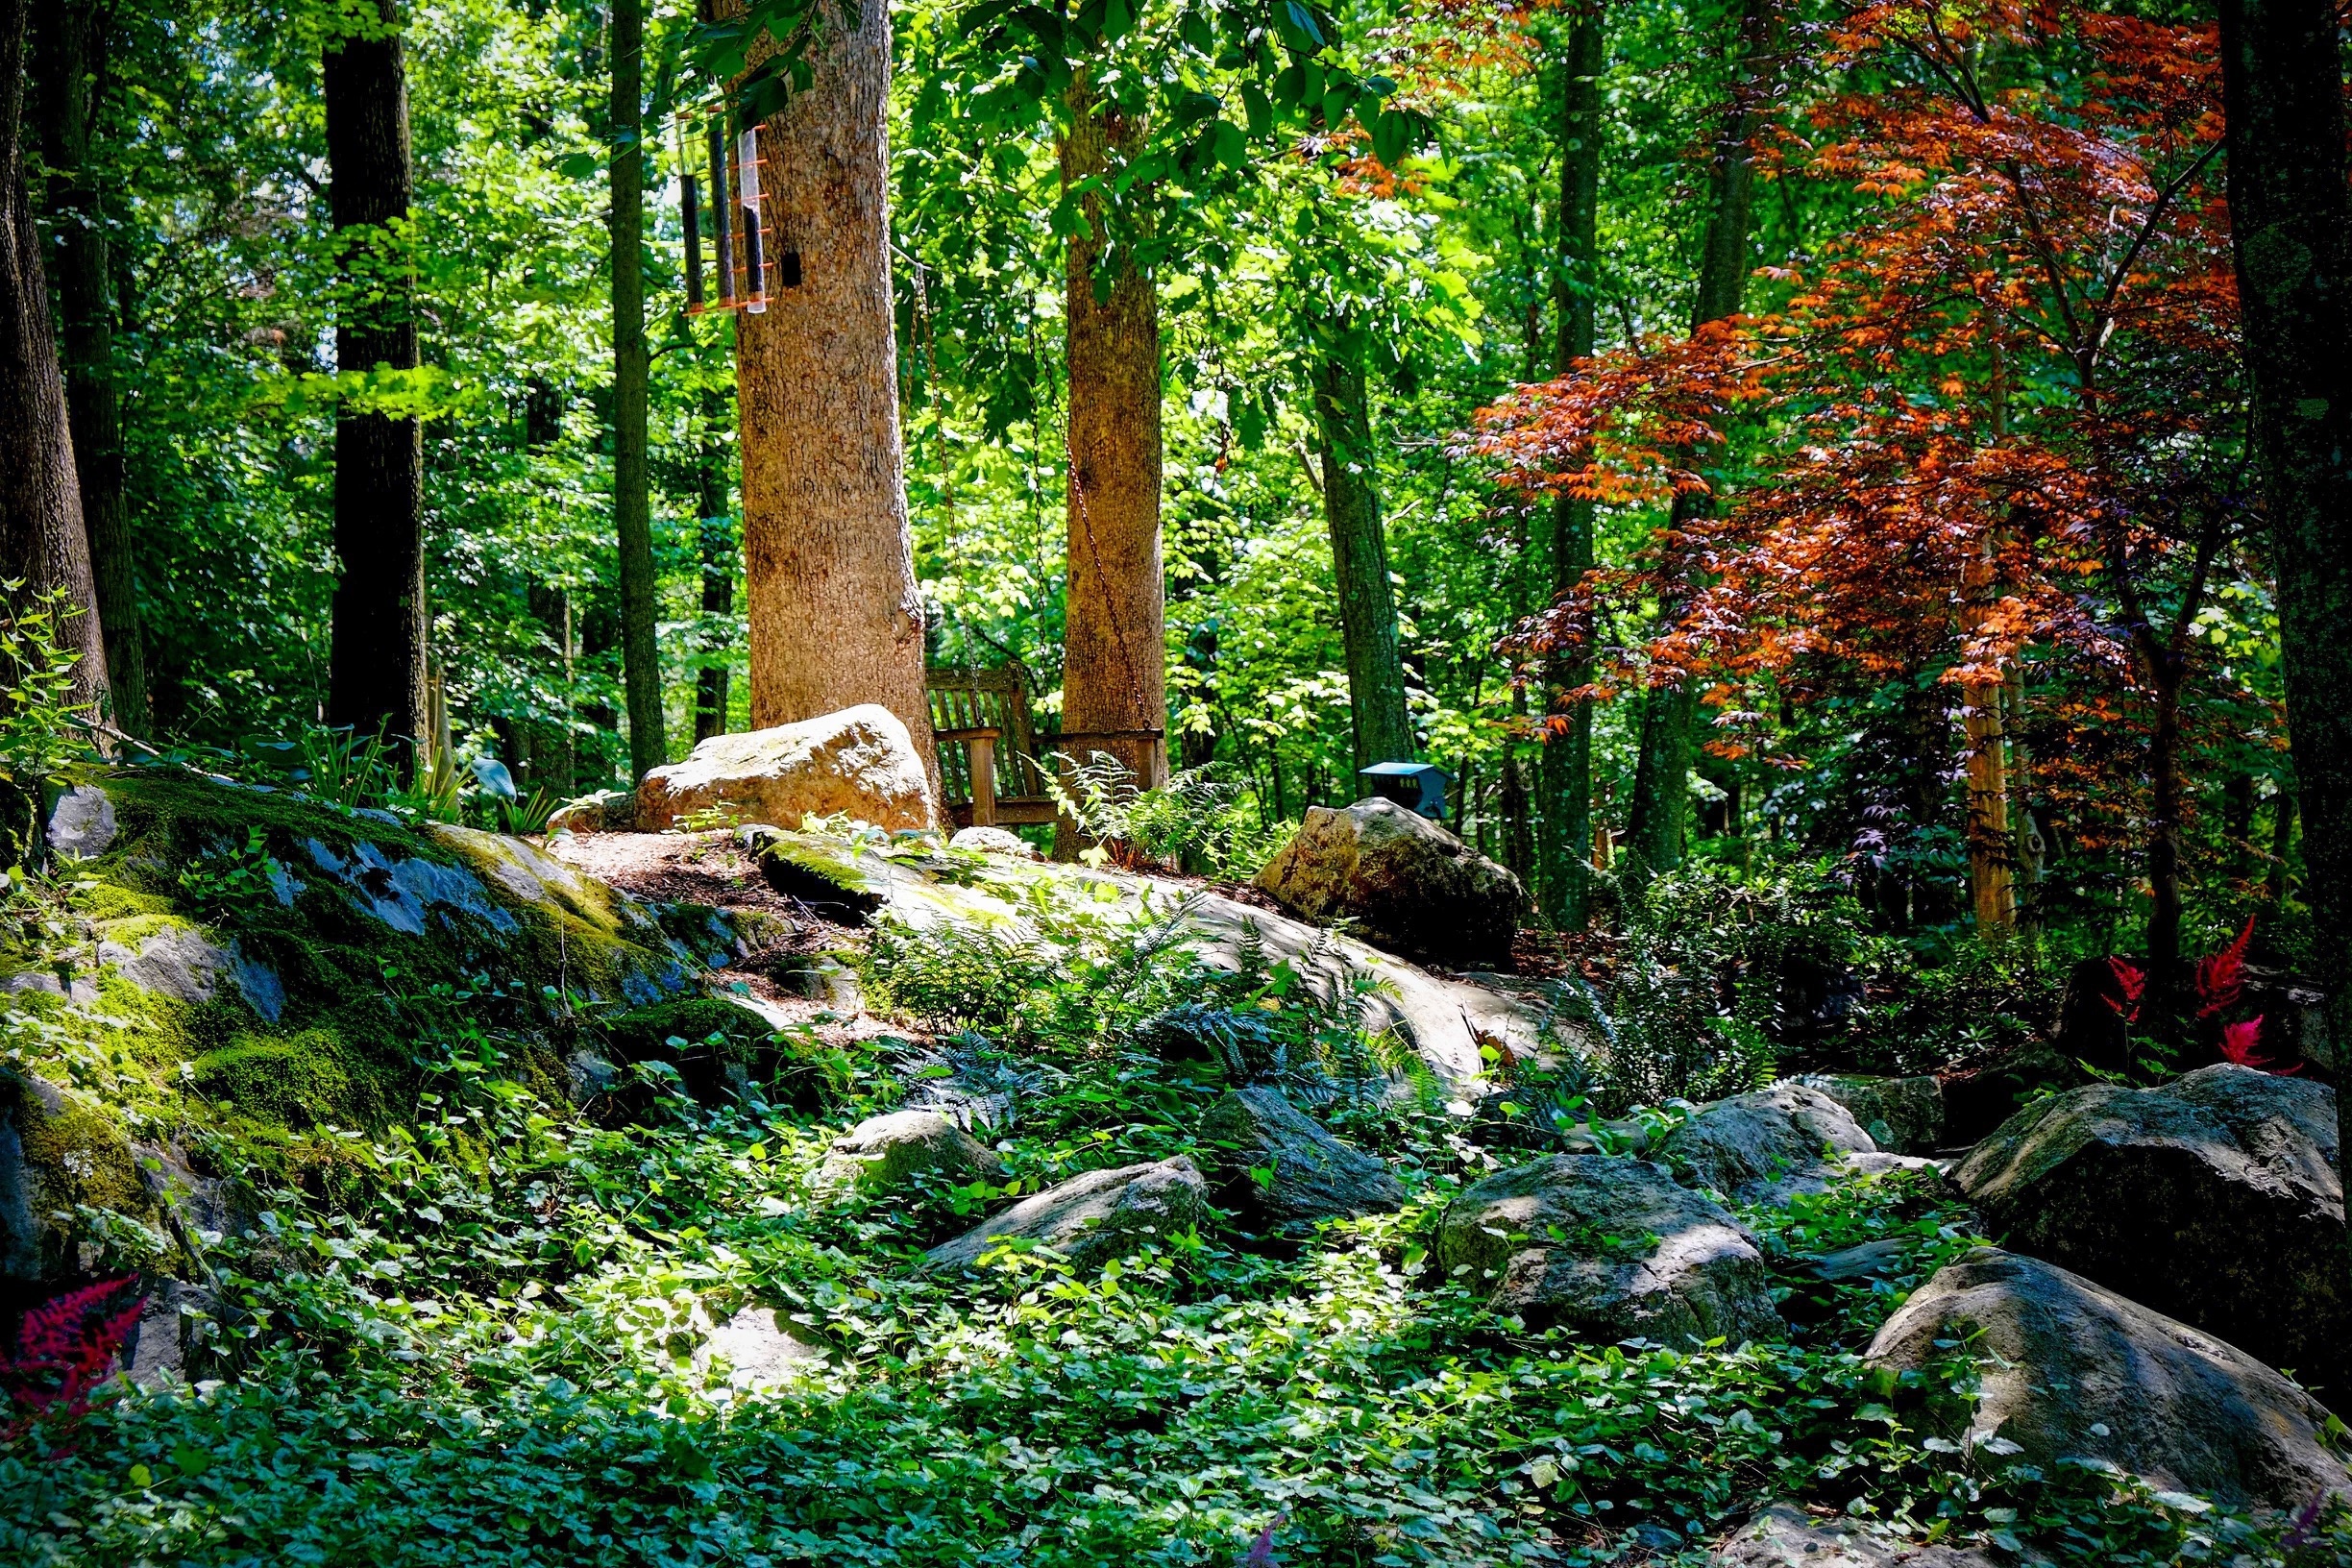 Natural Landscape Design With Earth Elements Stone Wood Water Bedford Hills New York Green Jay Landscaping